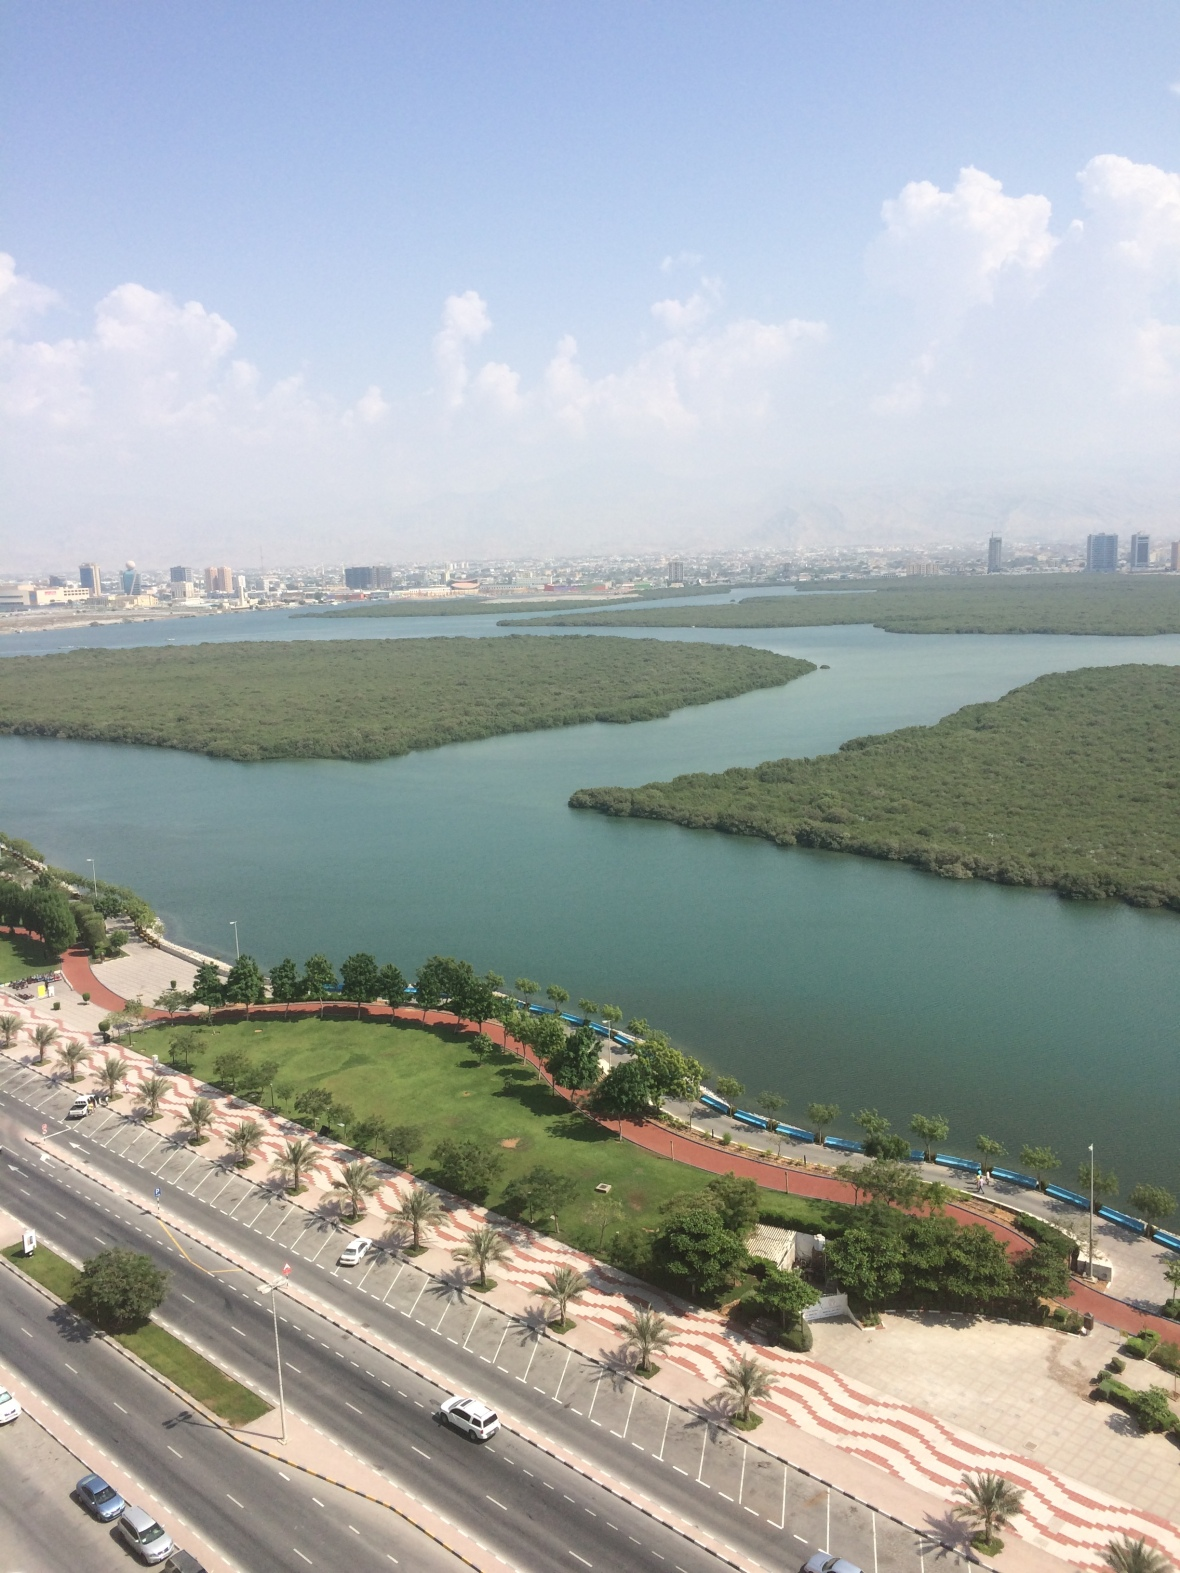 RAK City And Corniche View, Mangrove By Bin Majid, Ras Al Khaimah, UAE